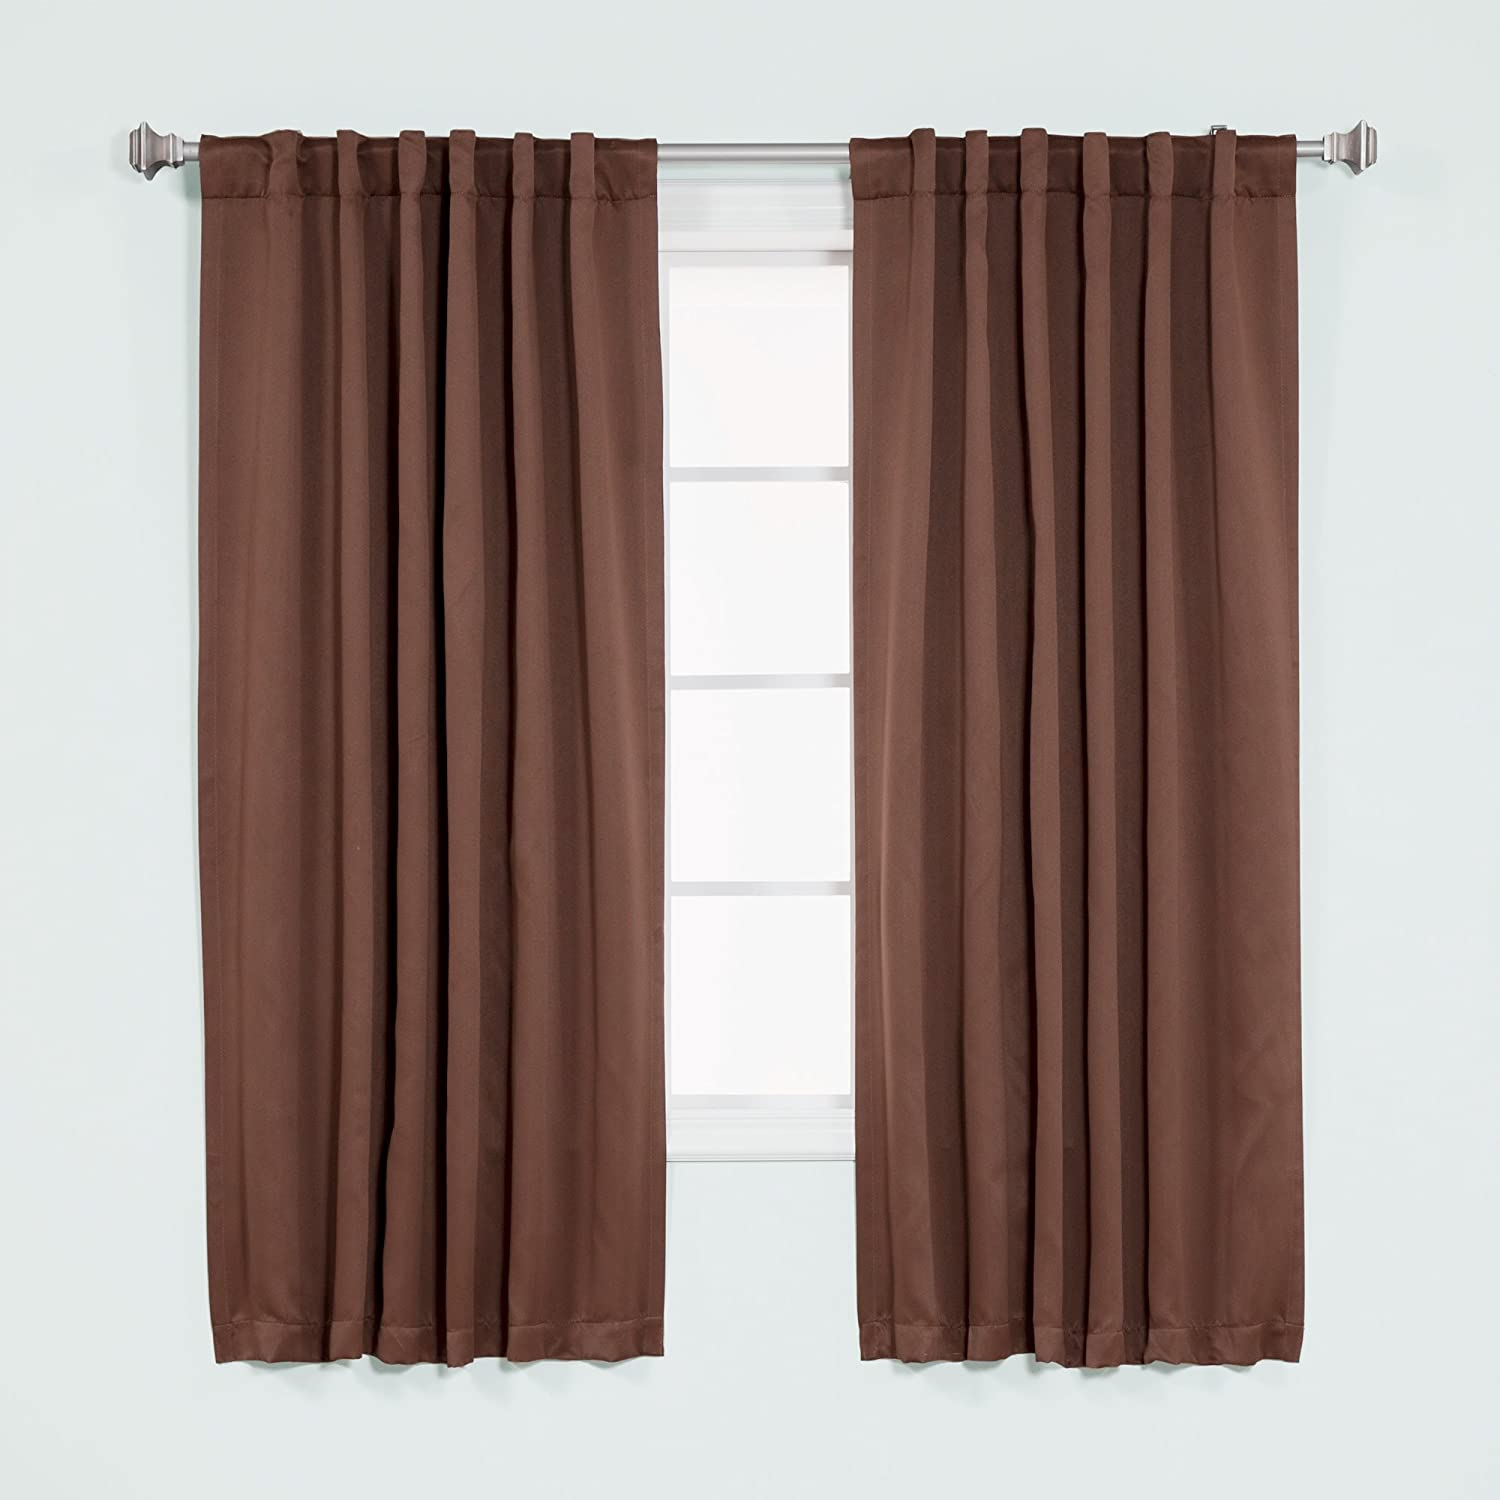 Best Home Fashion Basic Thermal Insulated Blackout Curtains - Back Tab/Rod Pocket - Chocolate - 52